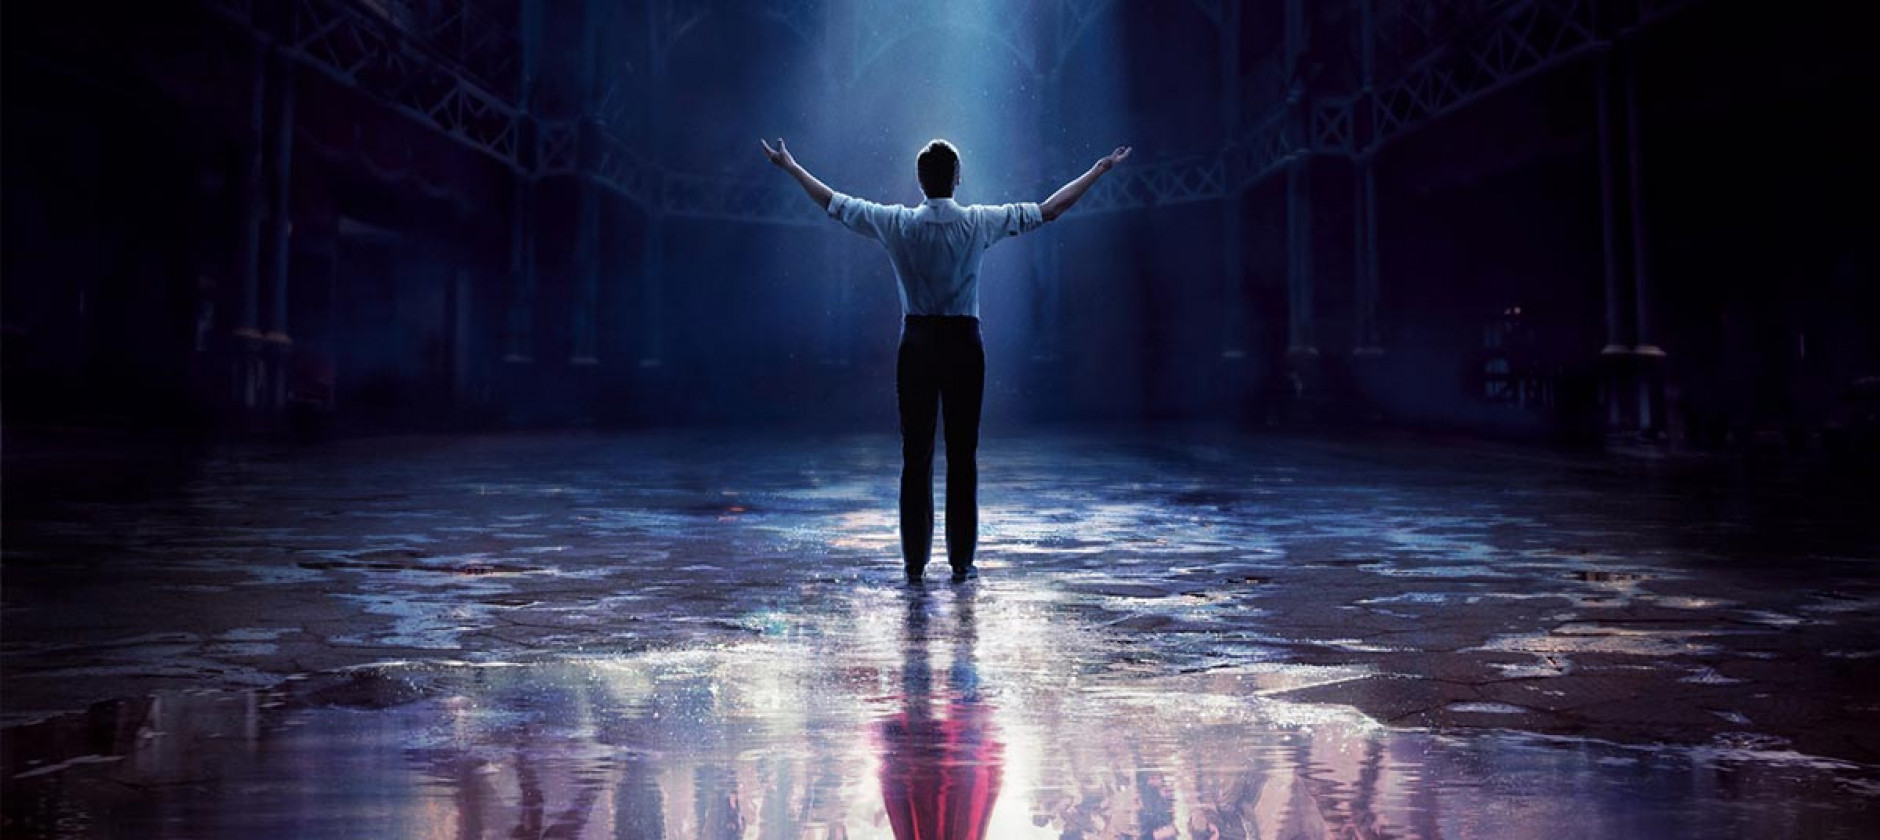 The Greatest Showman, lo spettacolo del circo